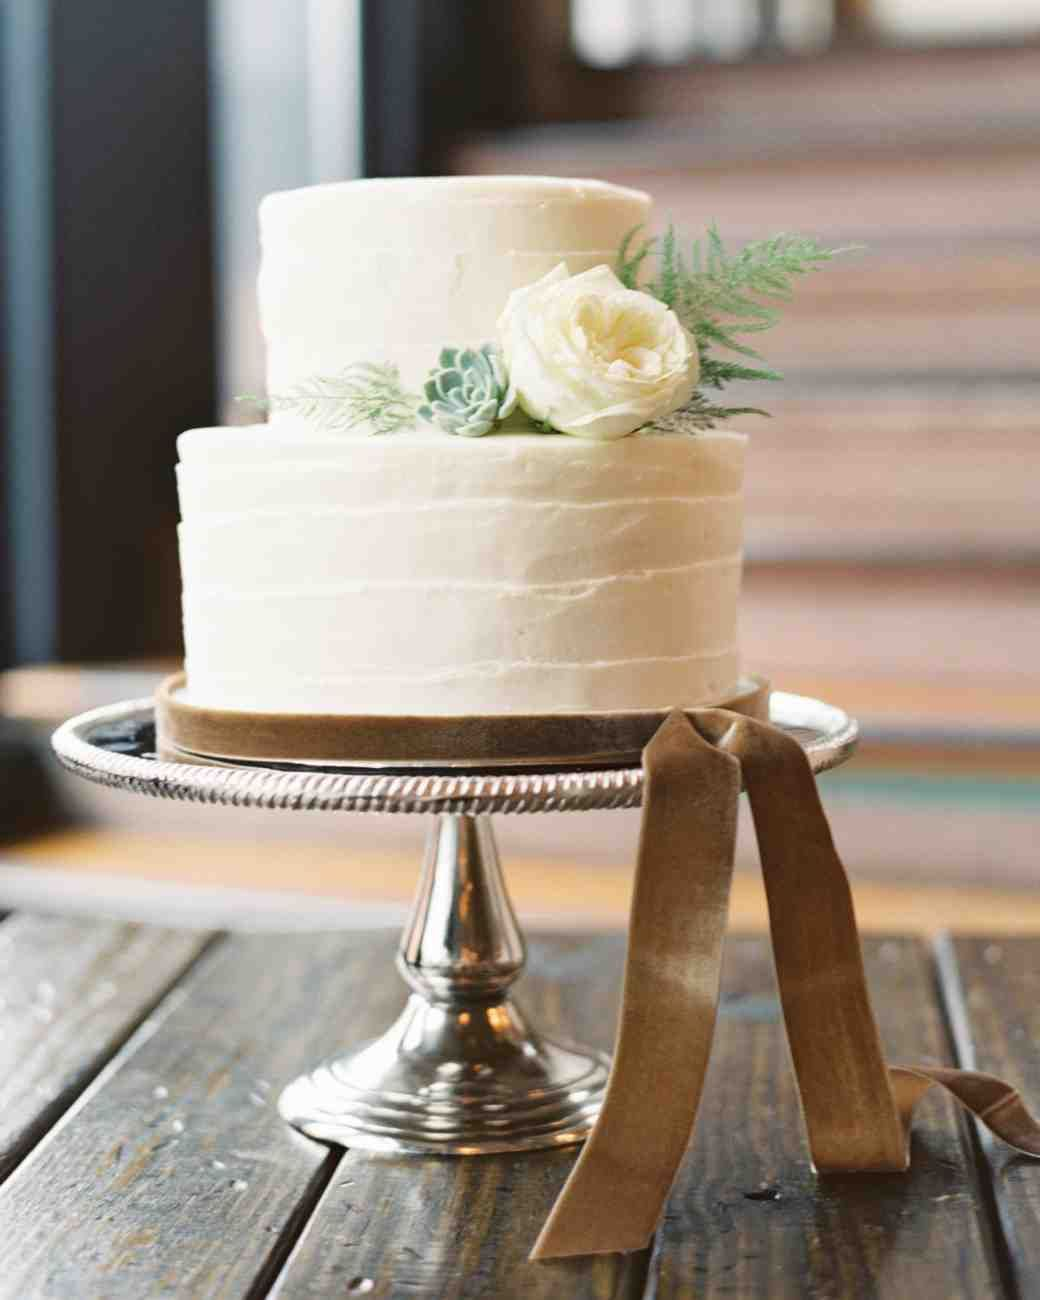 25 CUTE SMALL WEDDING CAKES FOR THE SPECIAL OCCASSION | Wedding ...